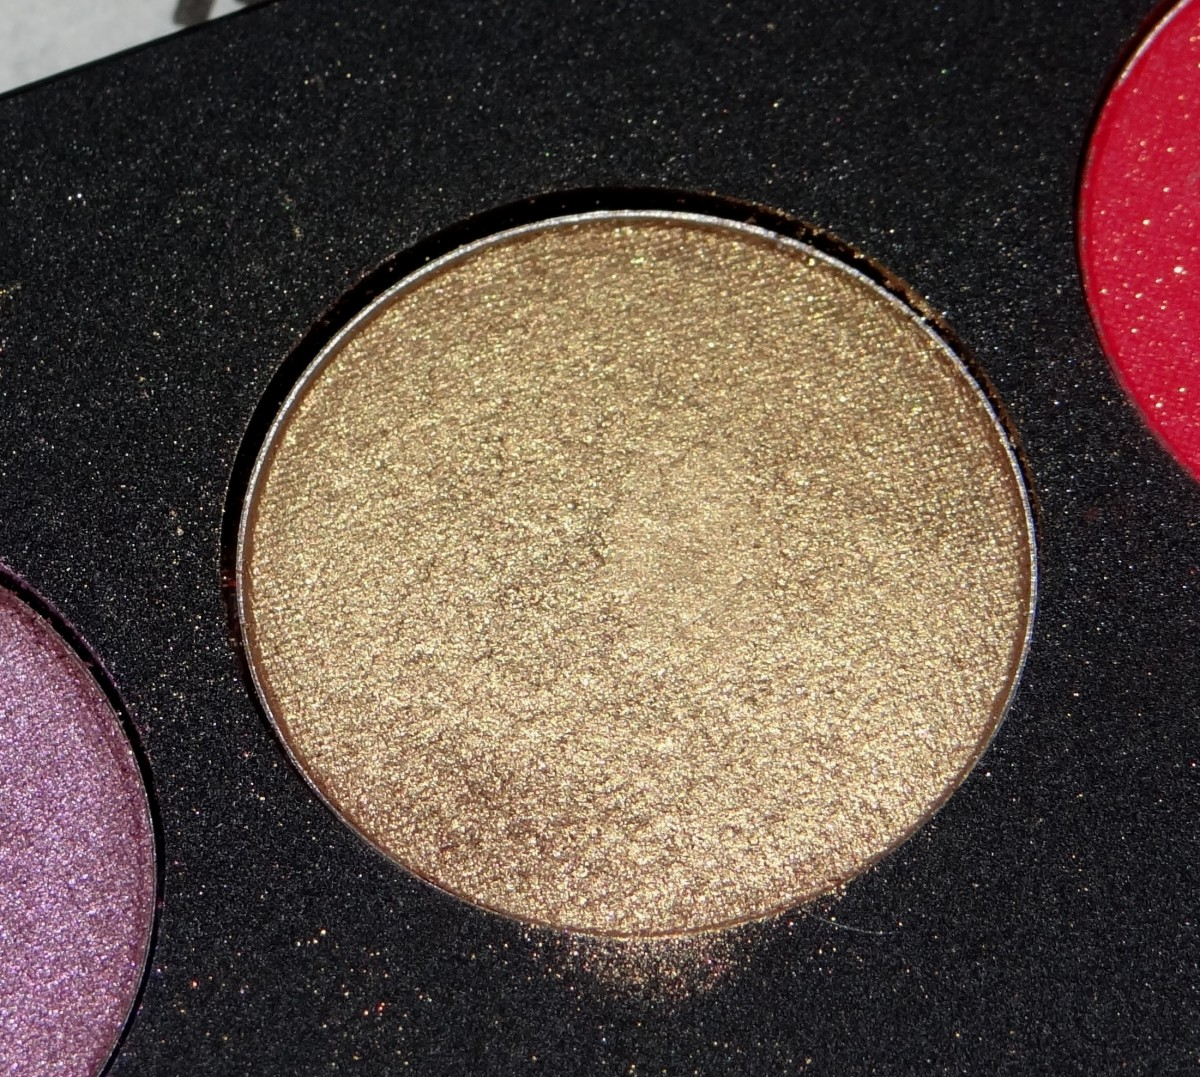 Inglot Eyeshadow AMC shine 49